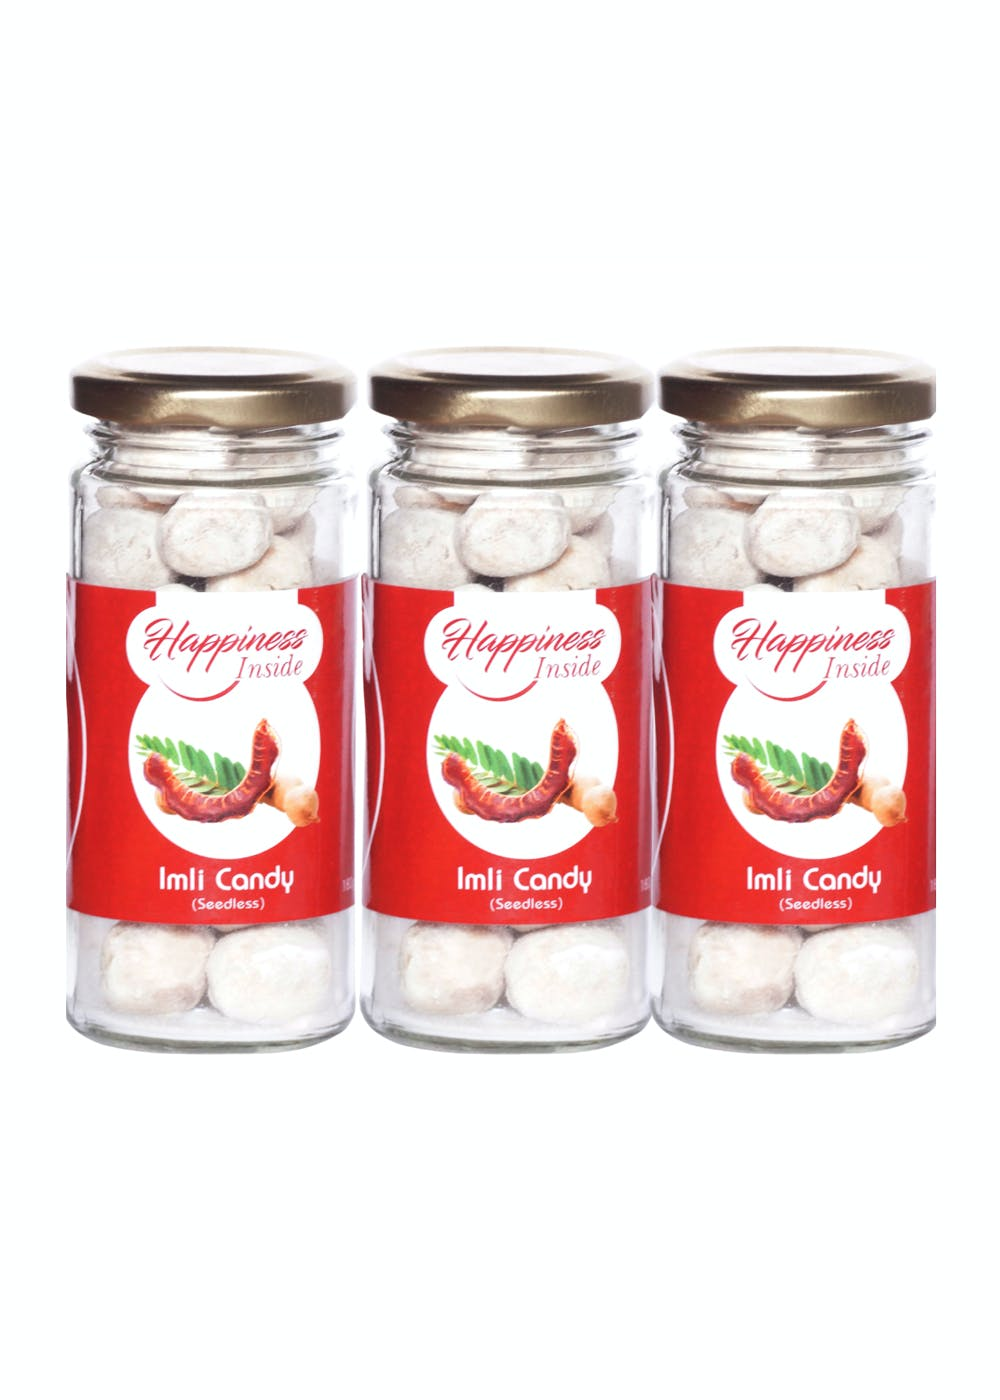 Imli Candy (Seedless) - Pack of 3